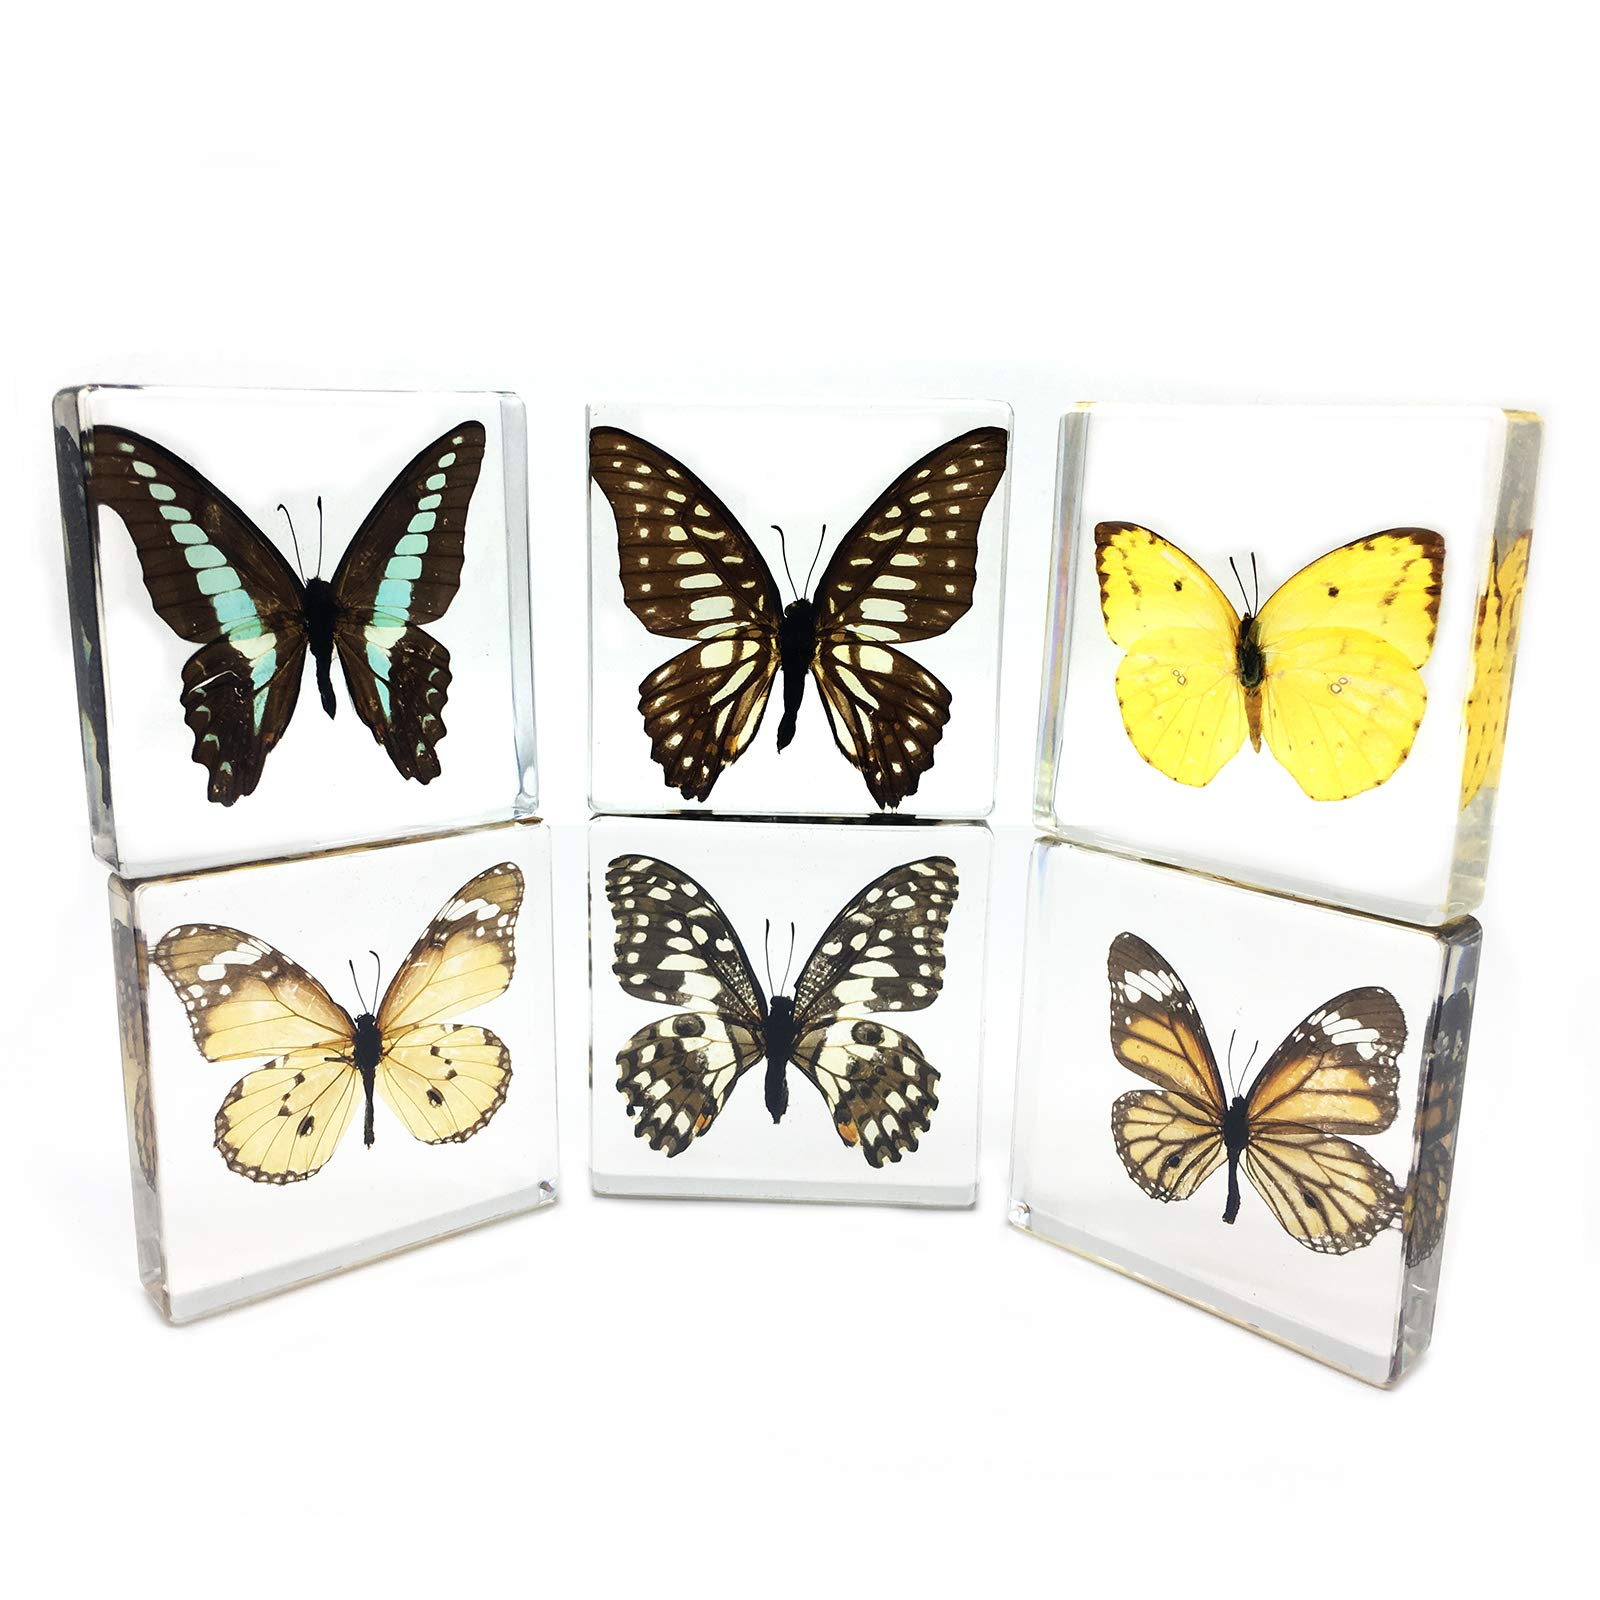 6 PCS Real Butterfly Specimen Specimens Paperweight Paperweights Collection Display (3x3x0.6'') by Amazingbug